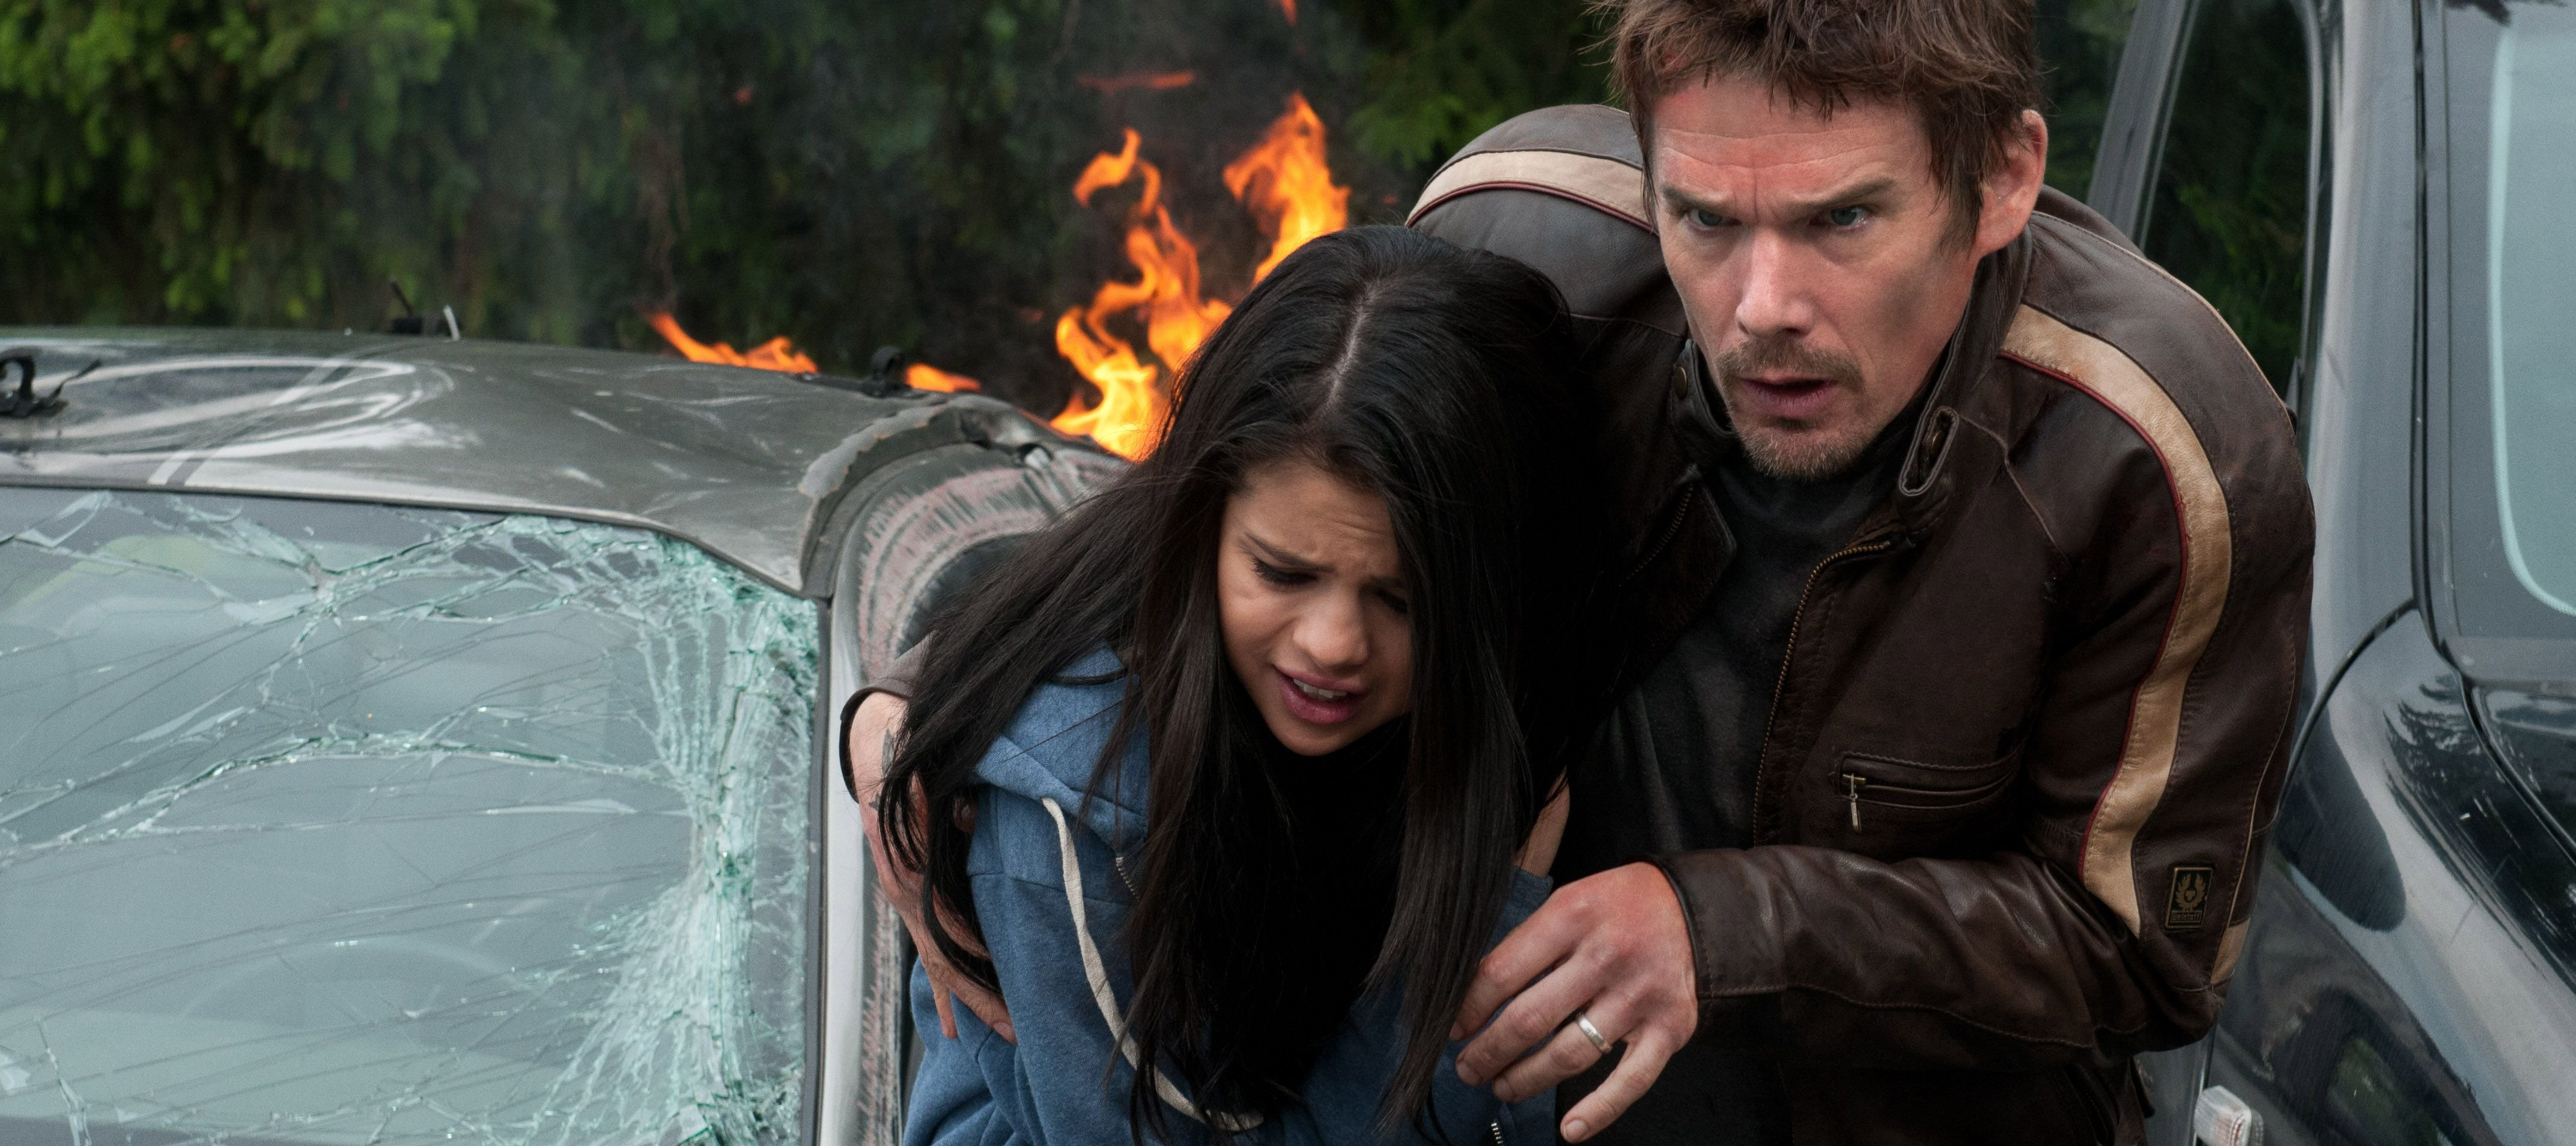 An image from Getaway